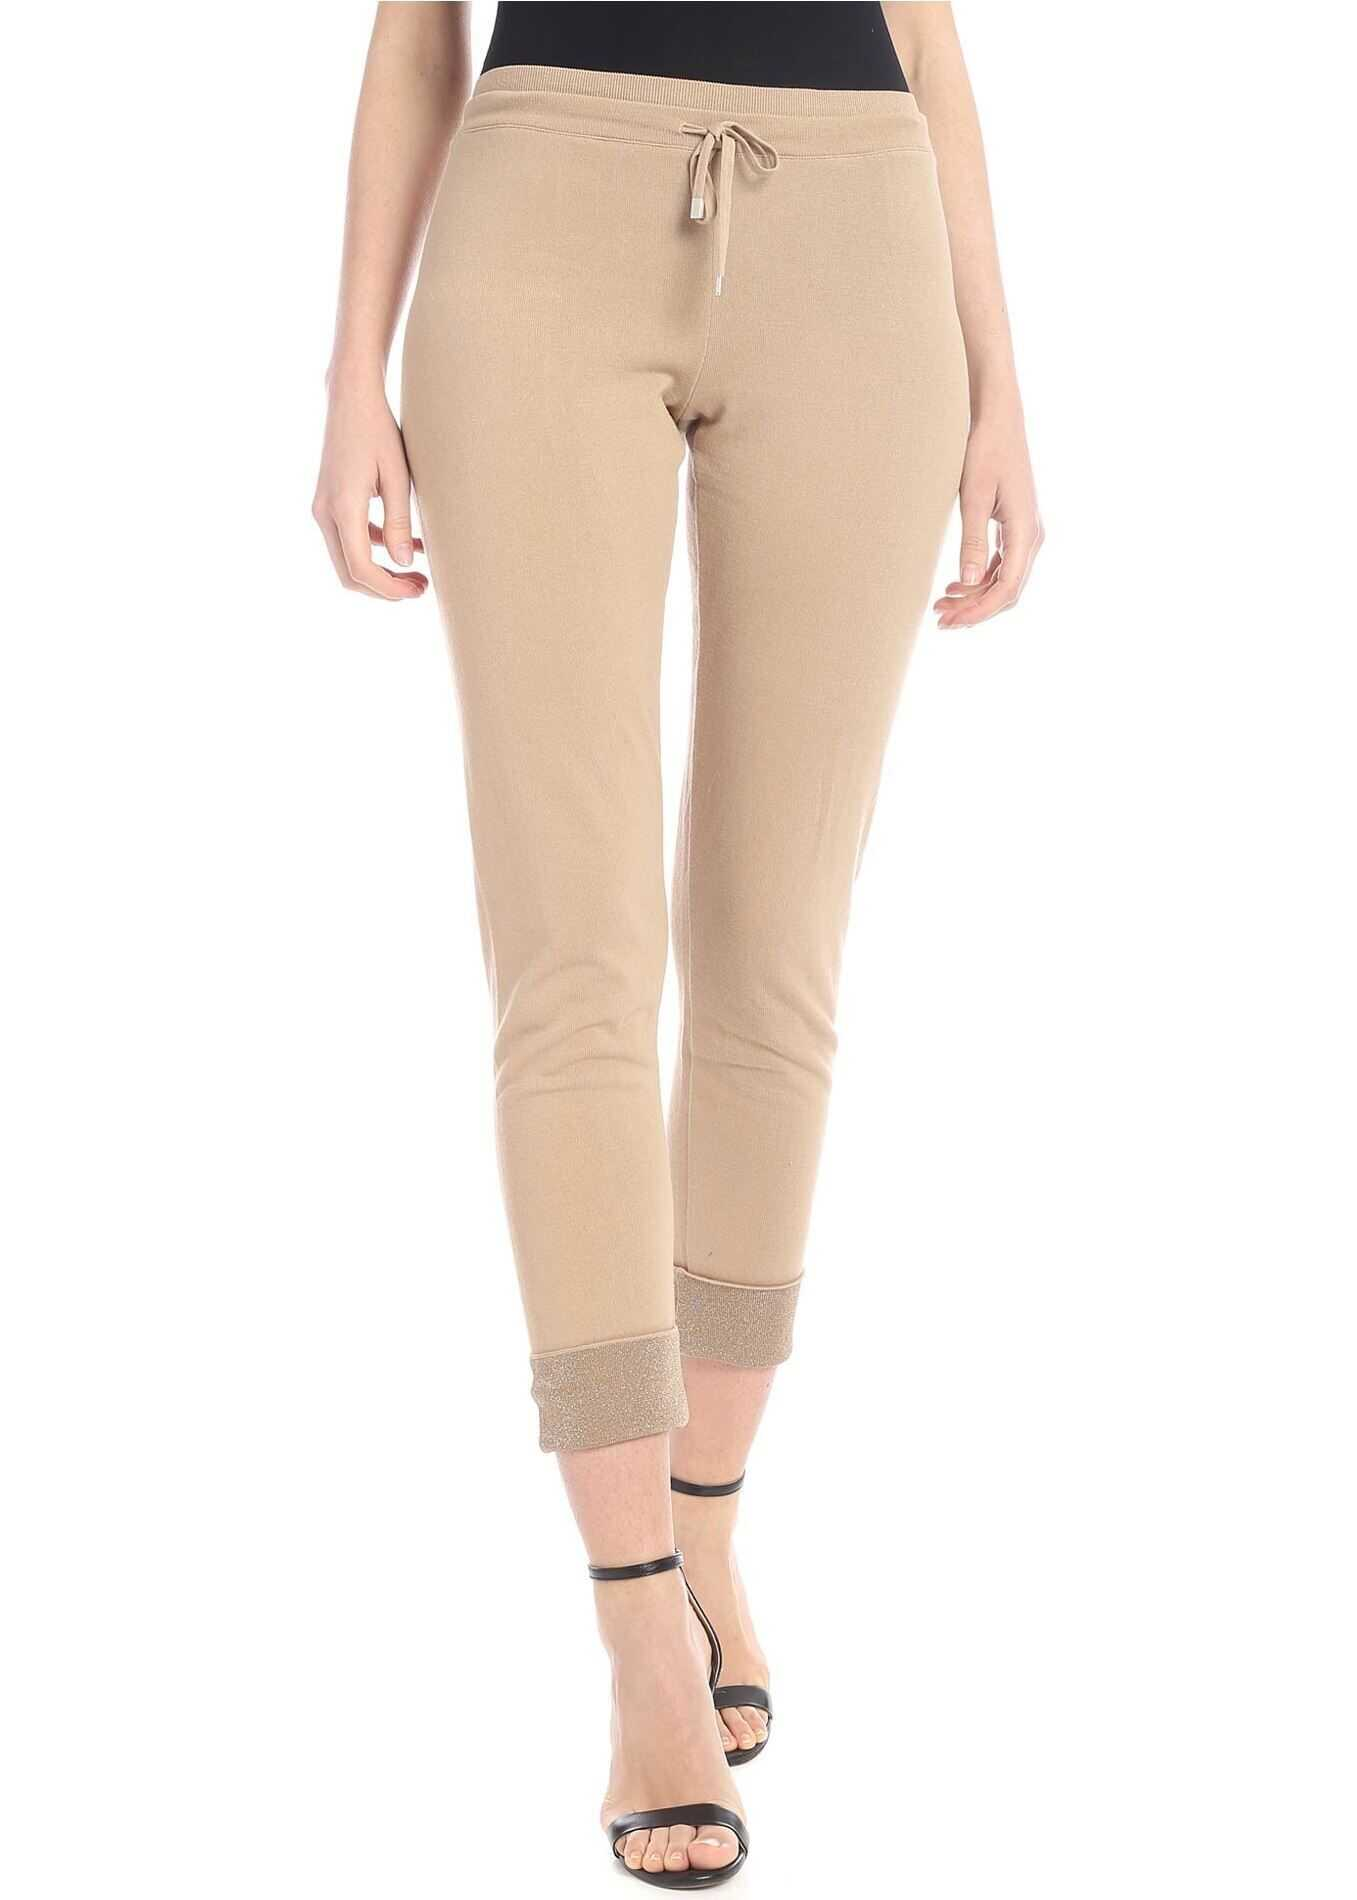 Kangra Cashmere Beige Knitted Trousers With Lamè Thread Beige